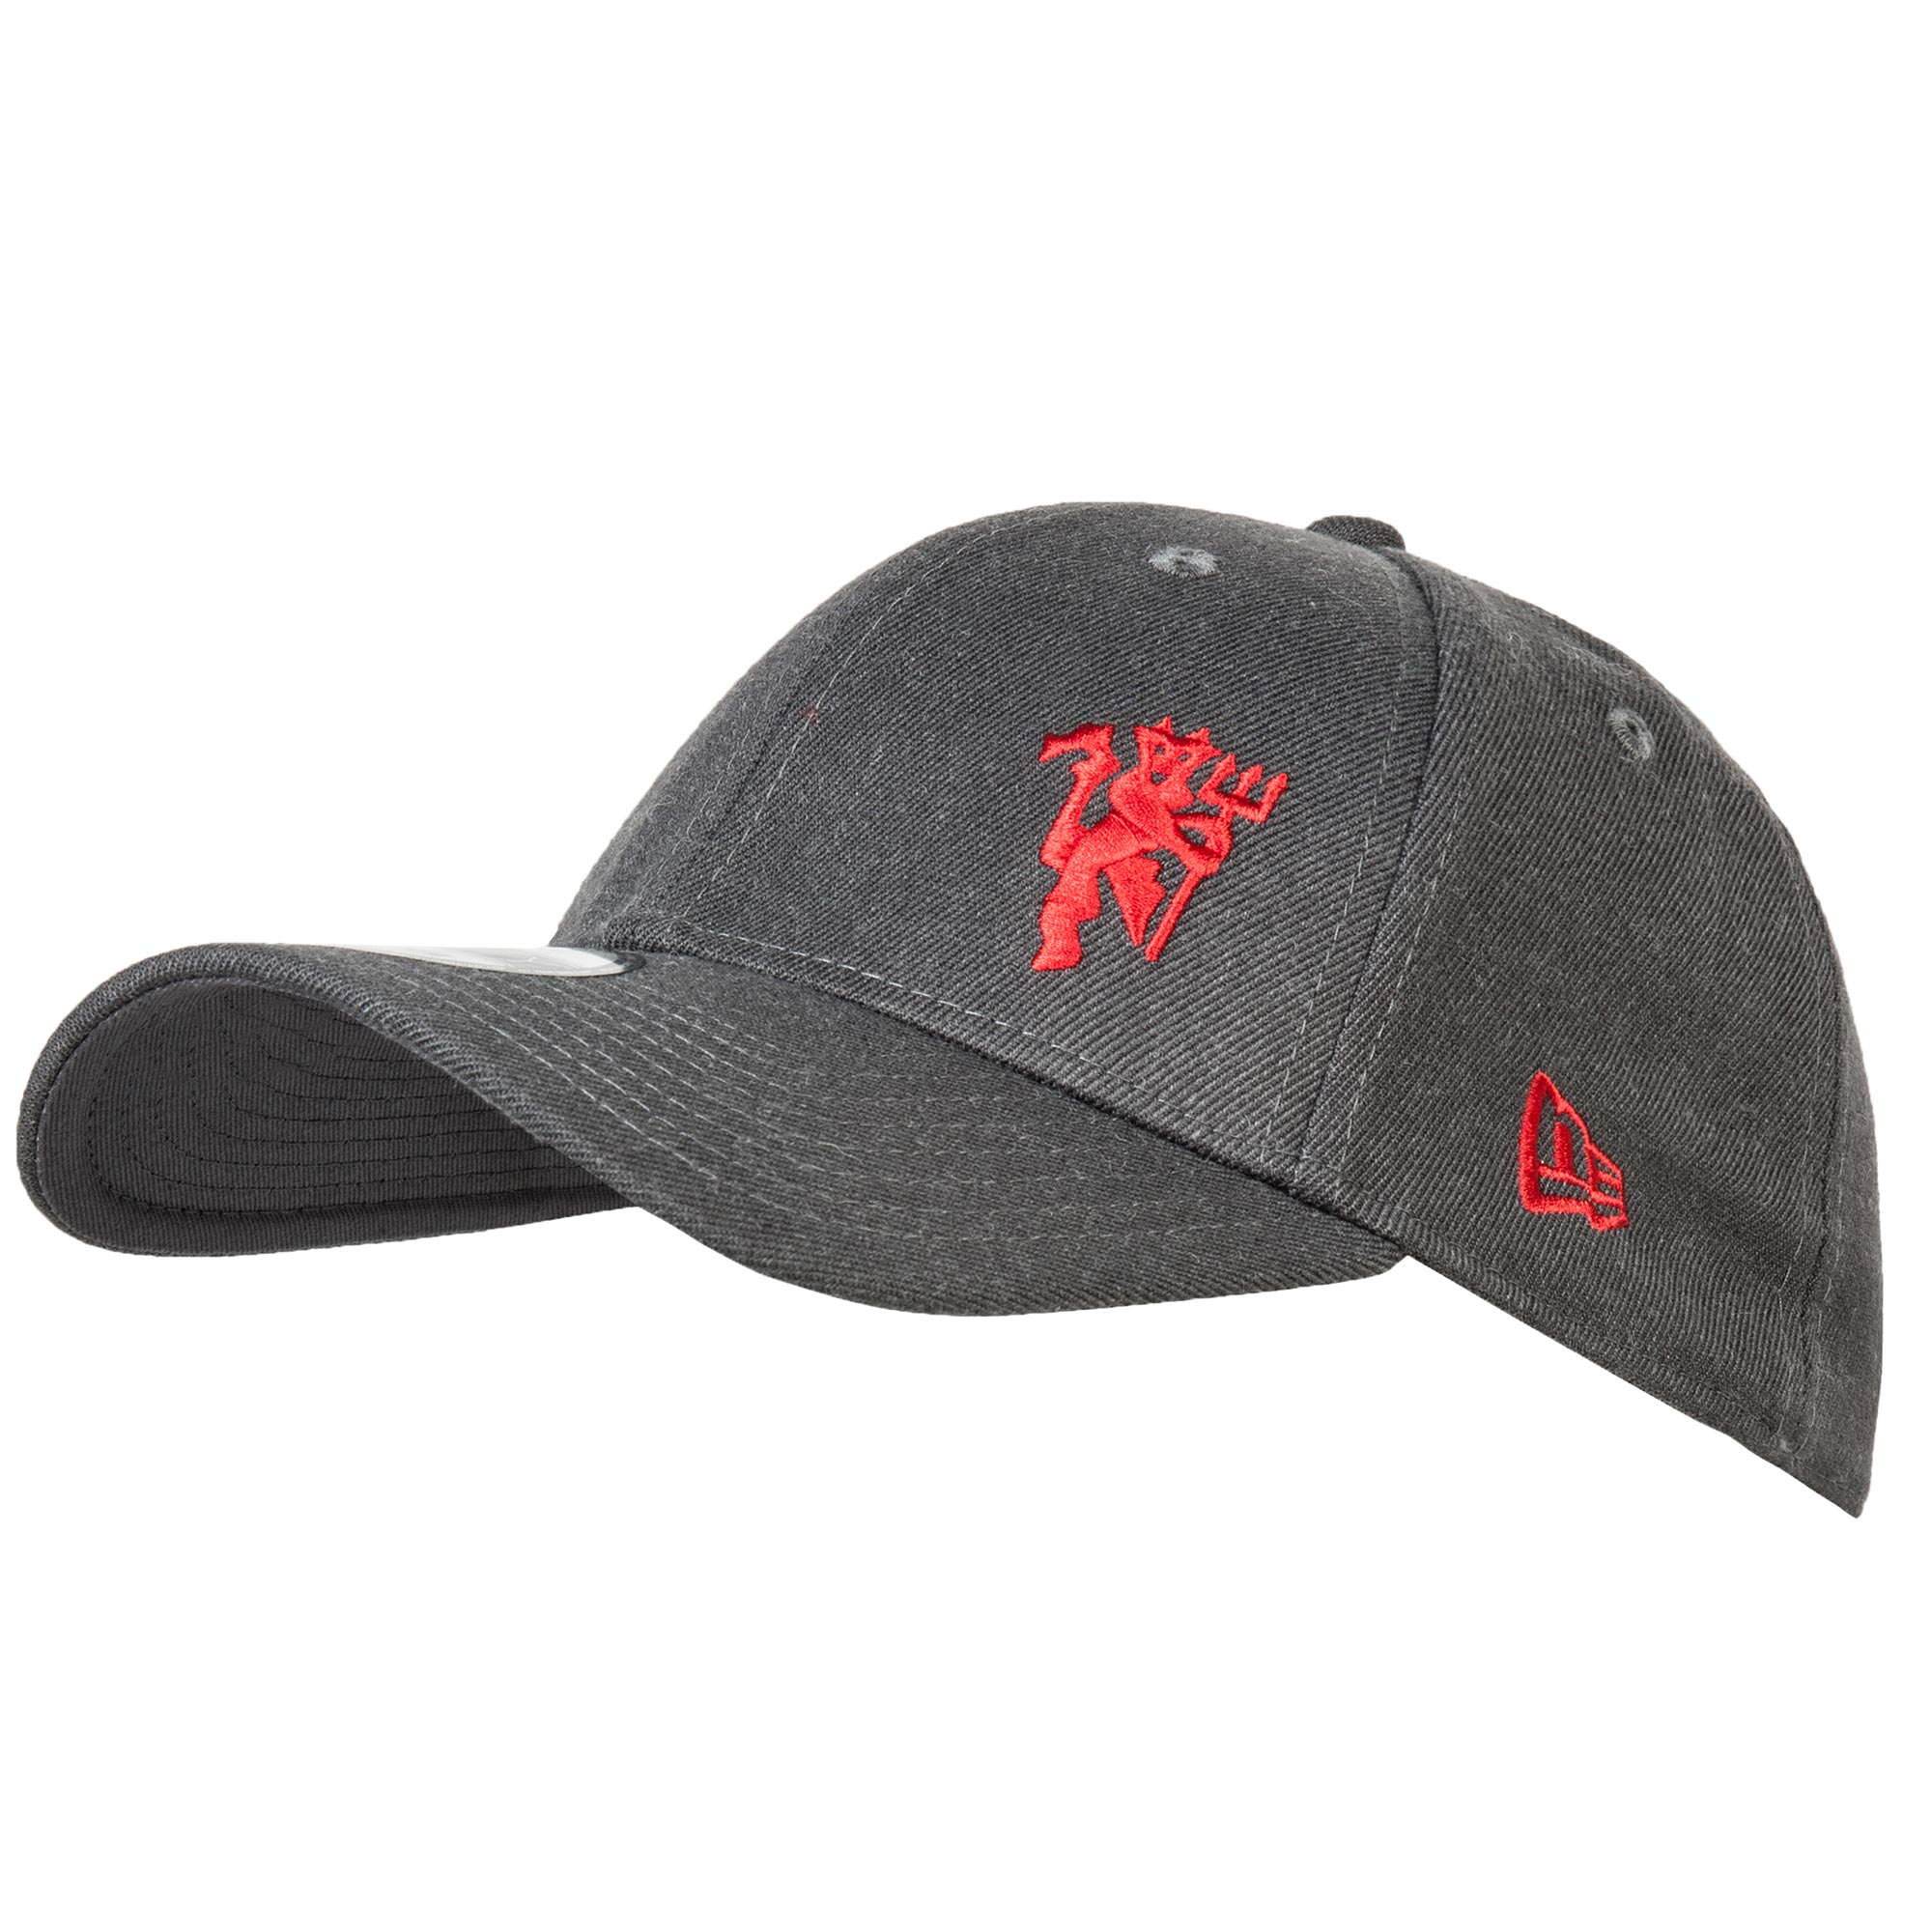 Manchester United New Era 39THIRTY Red Devil Stretch Fit Cap - Heather